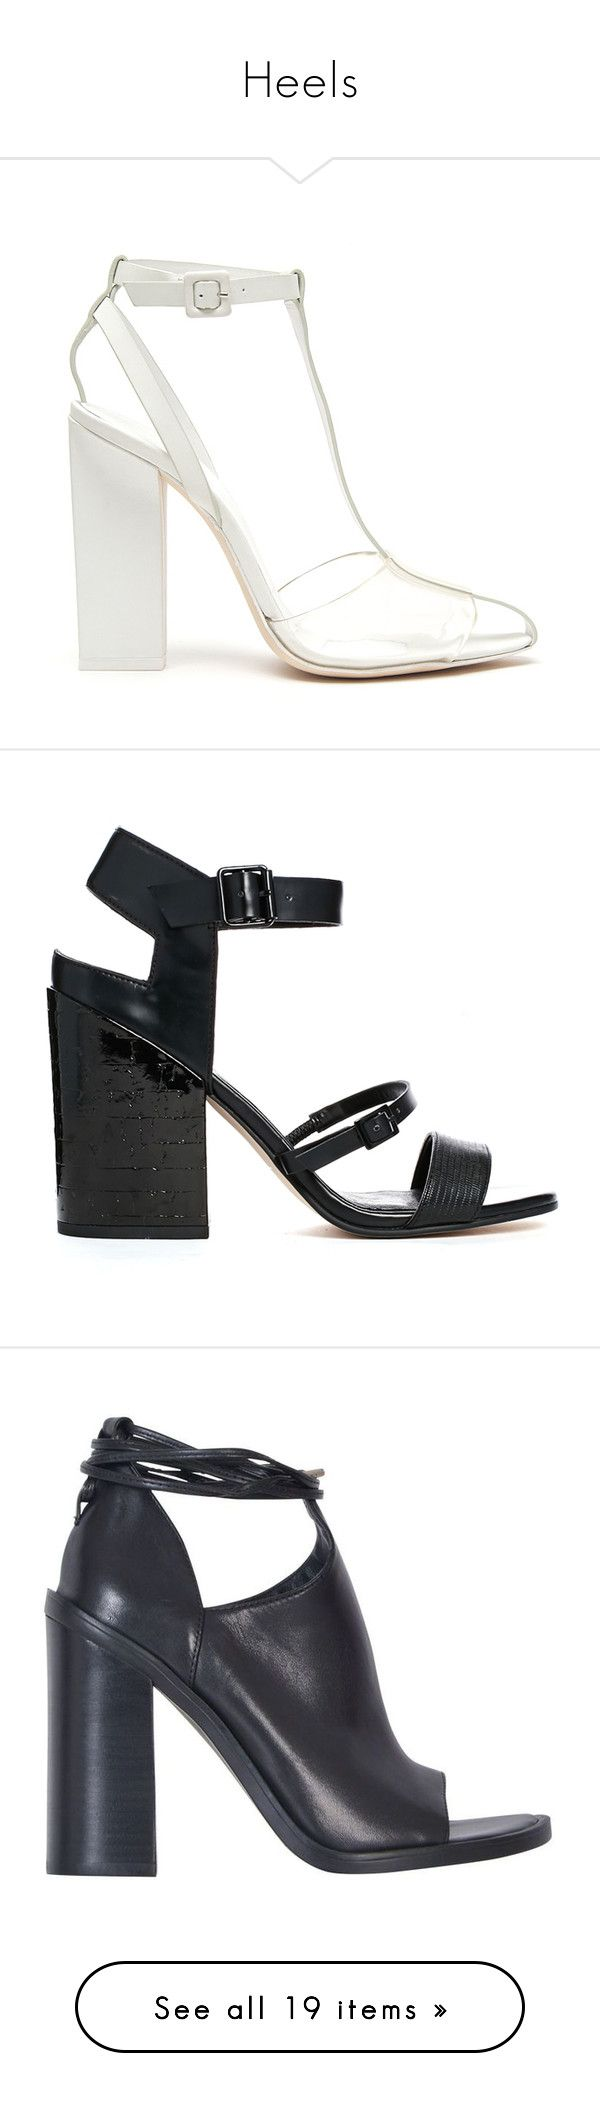 Black sandals ultima online -  Heels By Justonegirlwithdreams Liked On Polyvore Featuring Shoes Sandals Heels